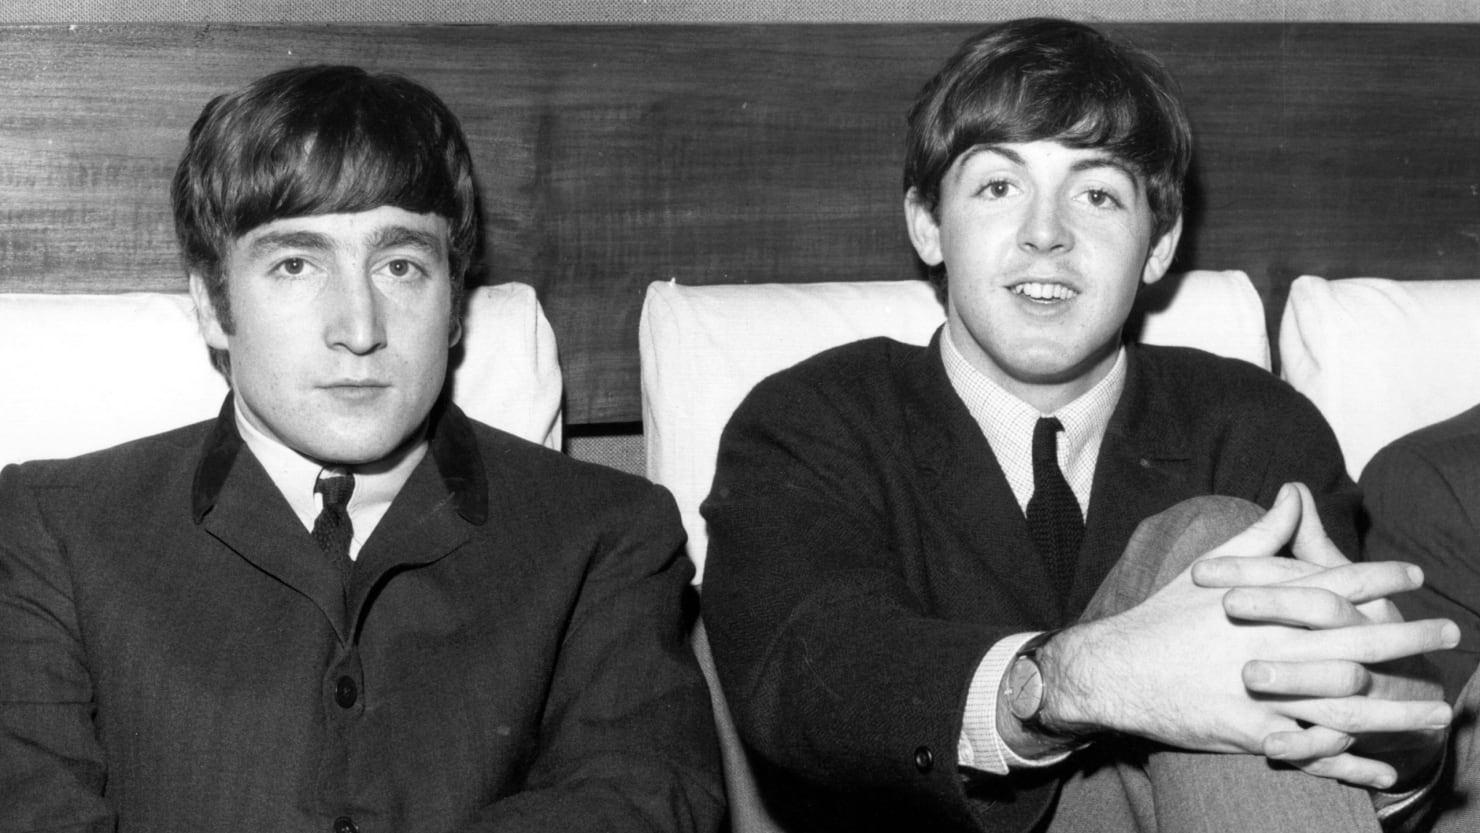 The Day John Lennon Met Paul McCartney and Changed Music Forever